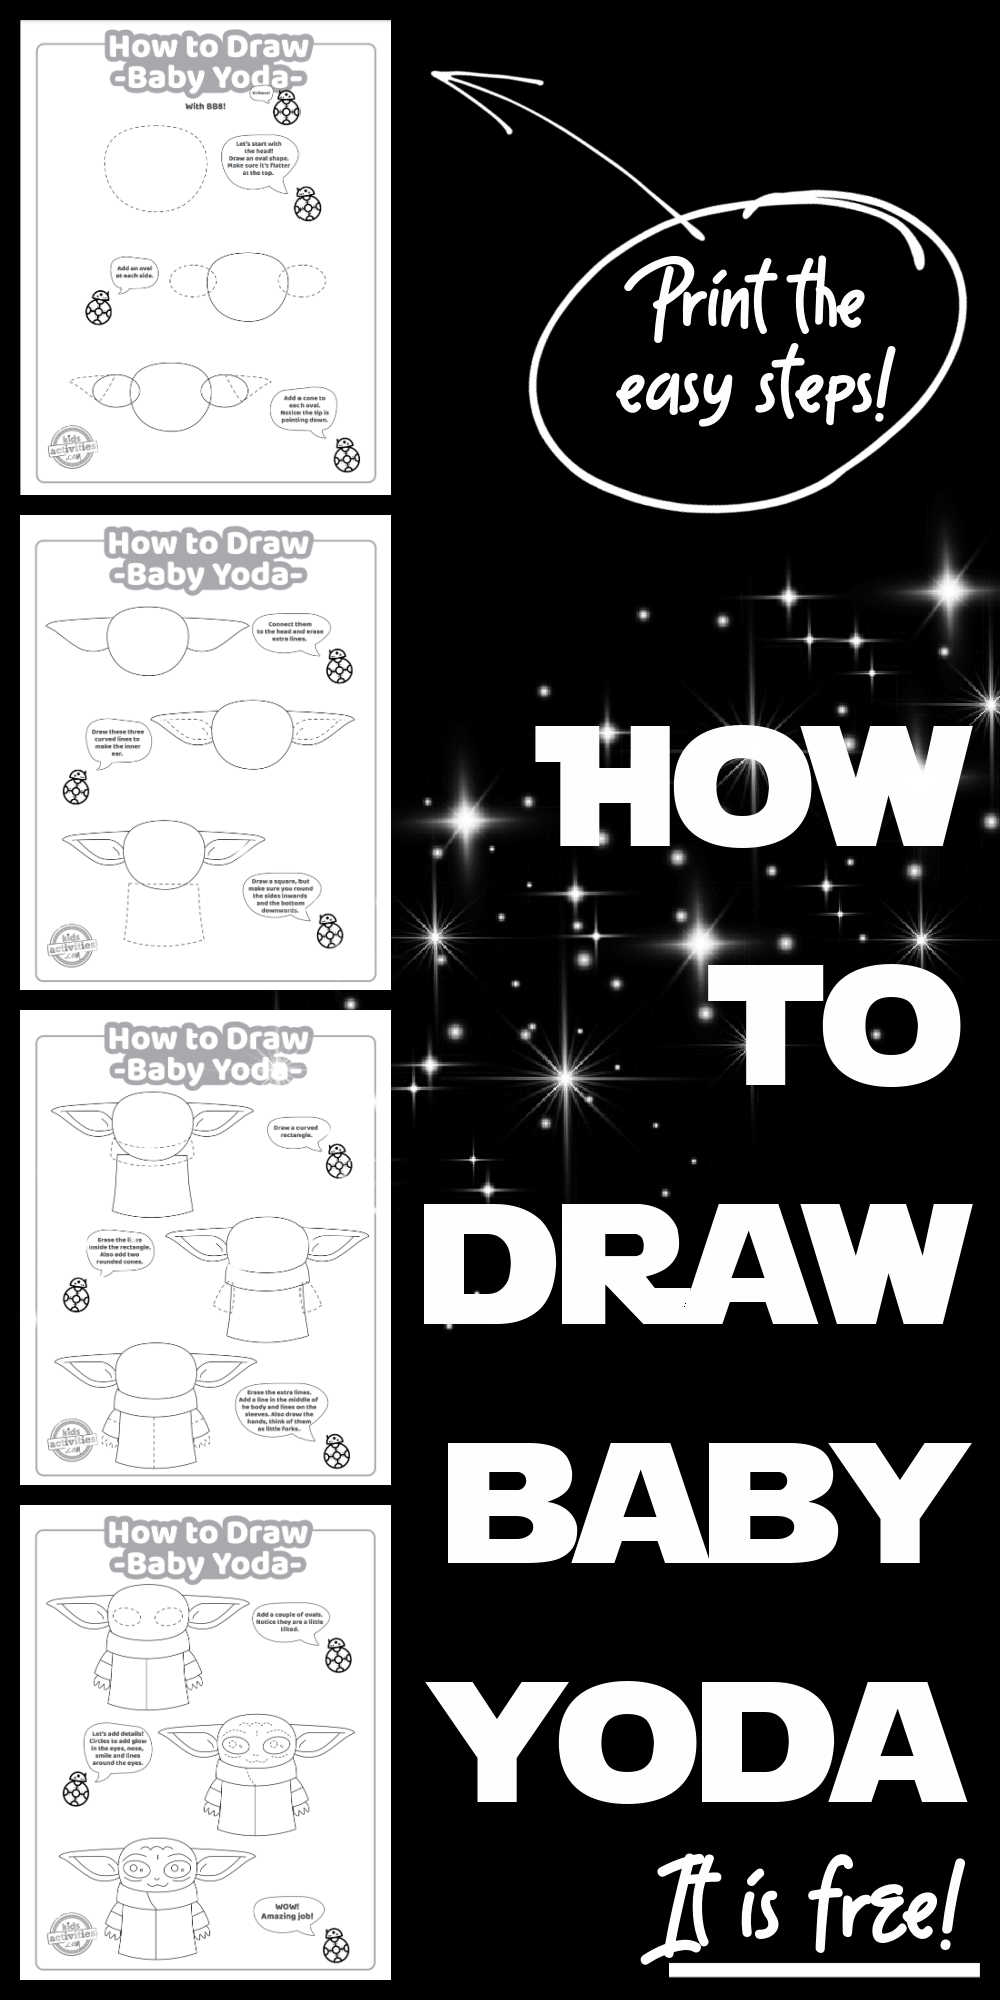 Easy Fun Step By Step How To Draw Baby Yoda Tutorial Kids Activities In 2021 Drawing Tutorial Easy Baby Drawing Yoda Drawing